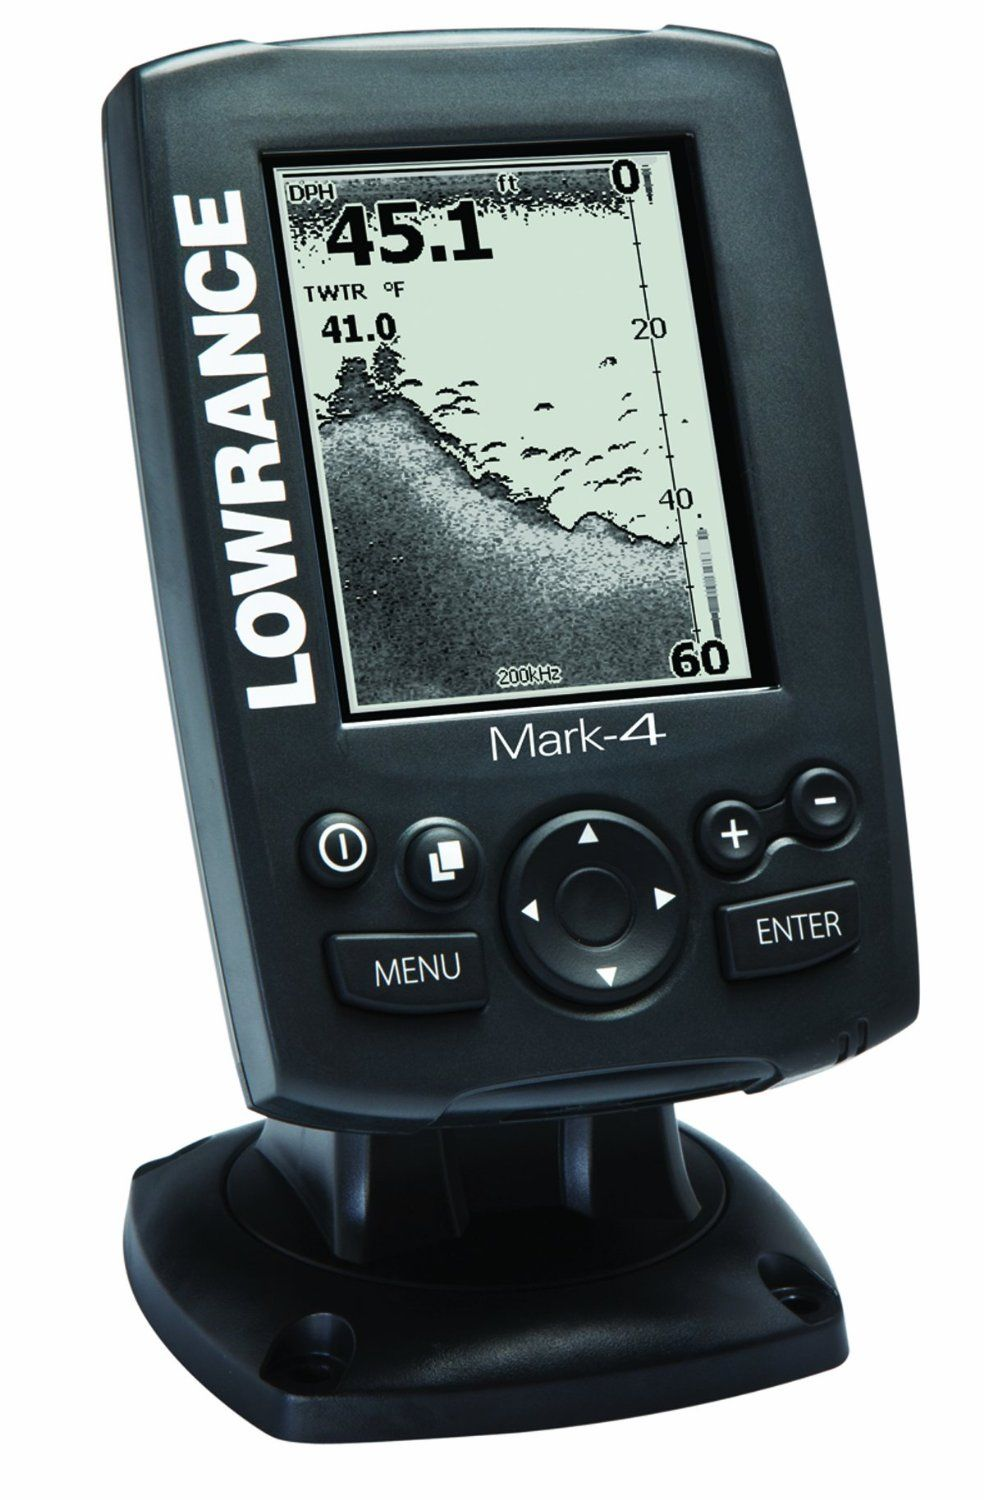 Lowrance mark 4 combo base fishfinder and for Fish finder lowrance